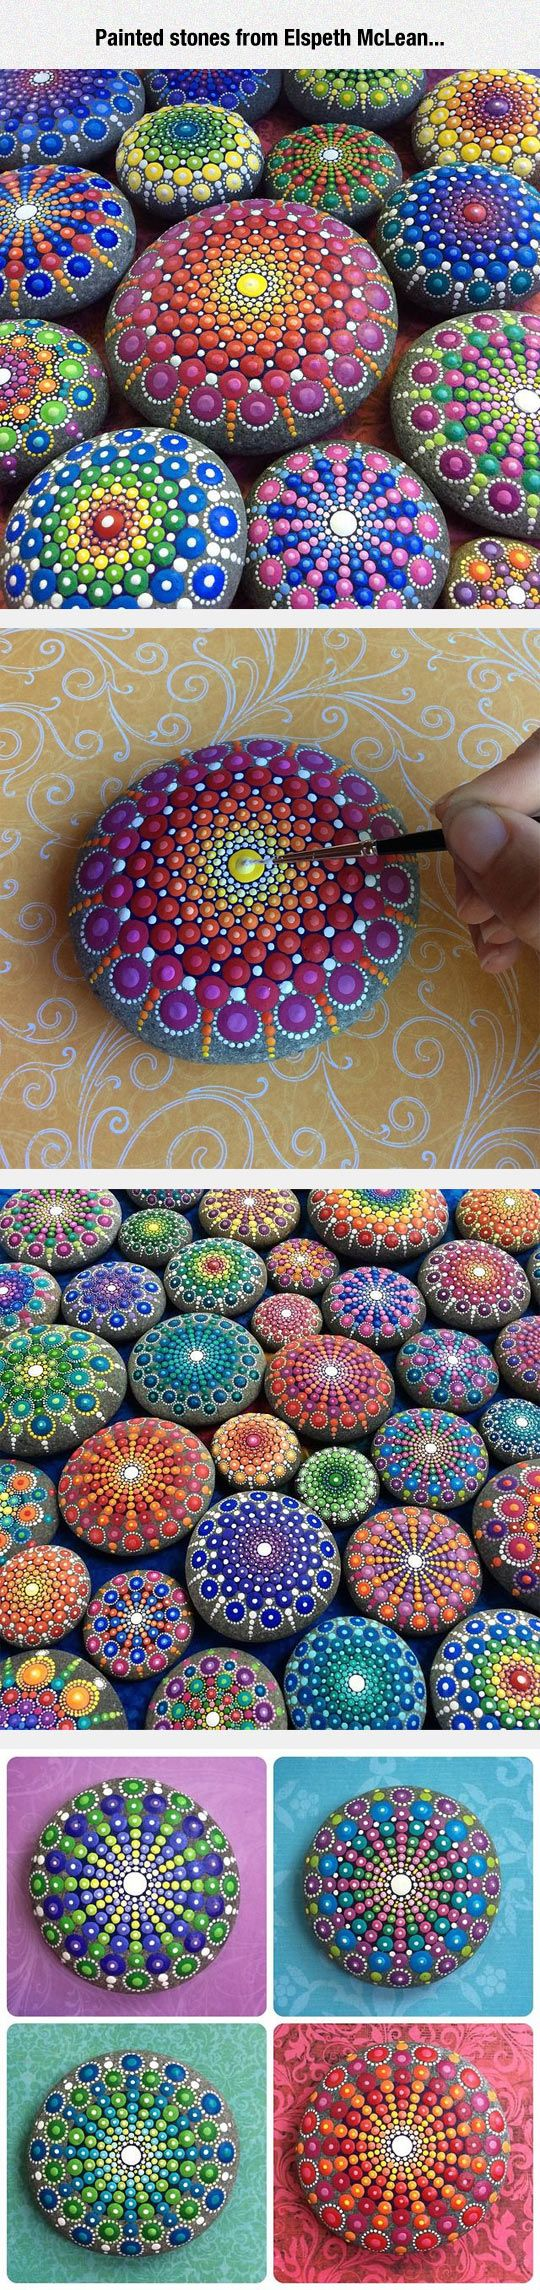 Painted stones.